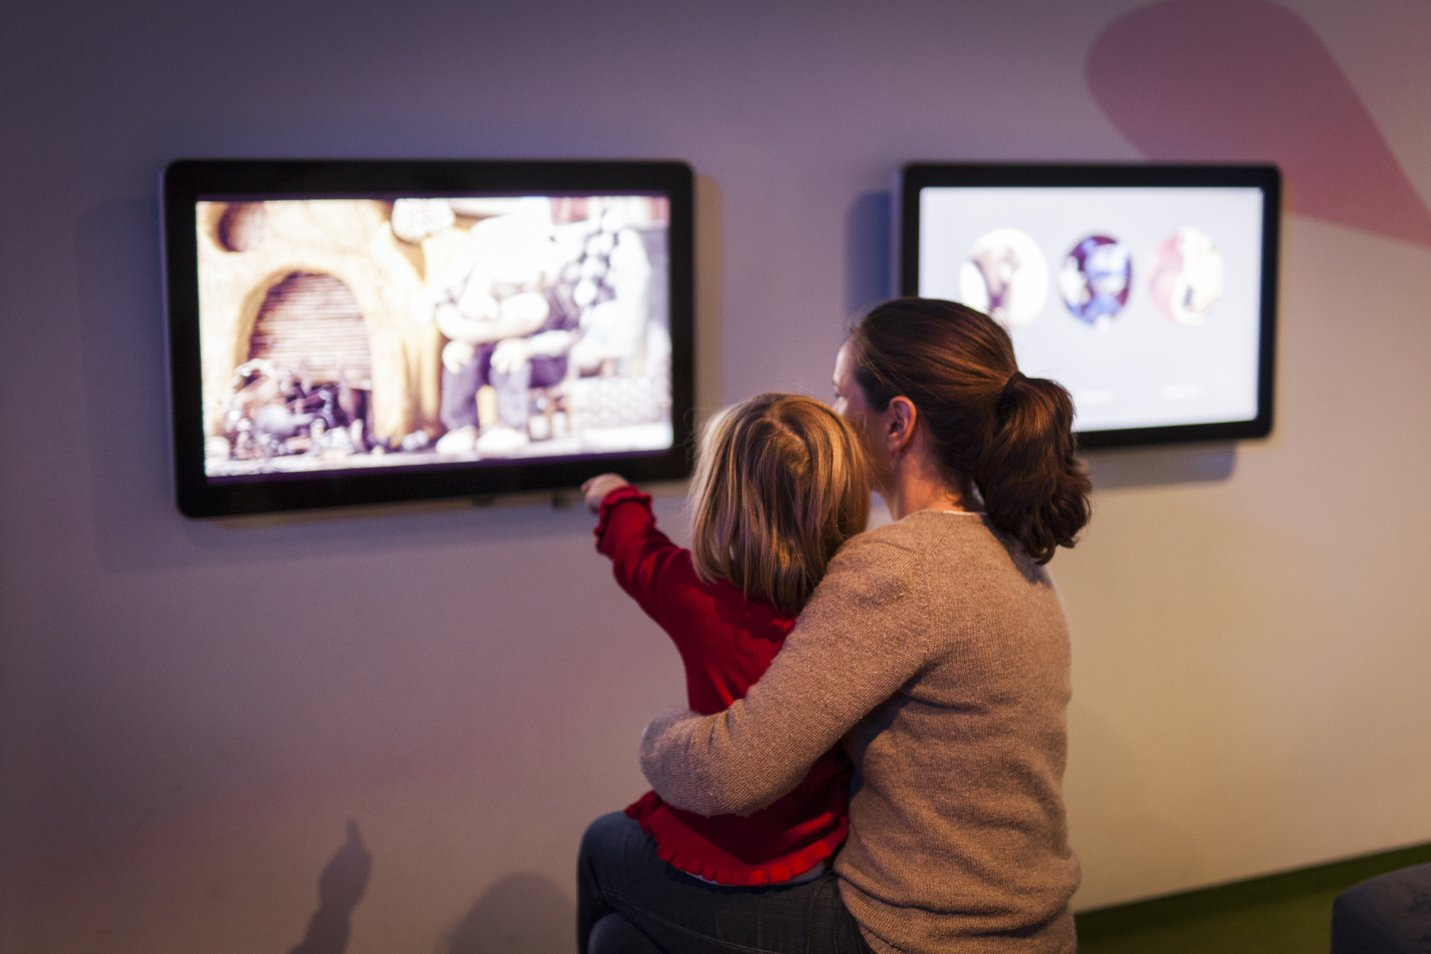 Mother and daugter interacting with screens at ACMI - Image: Charlie Kinross